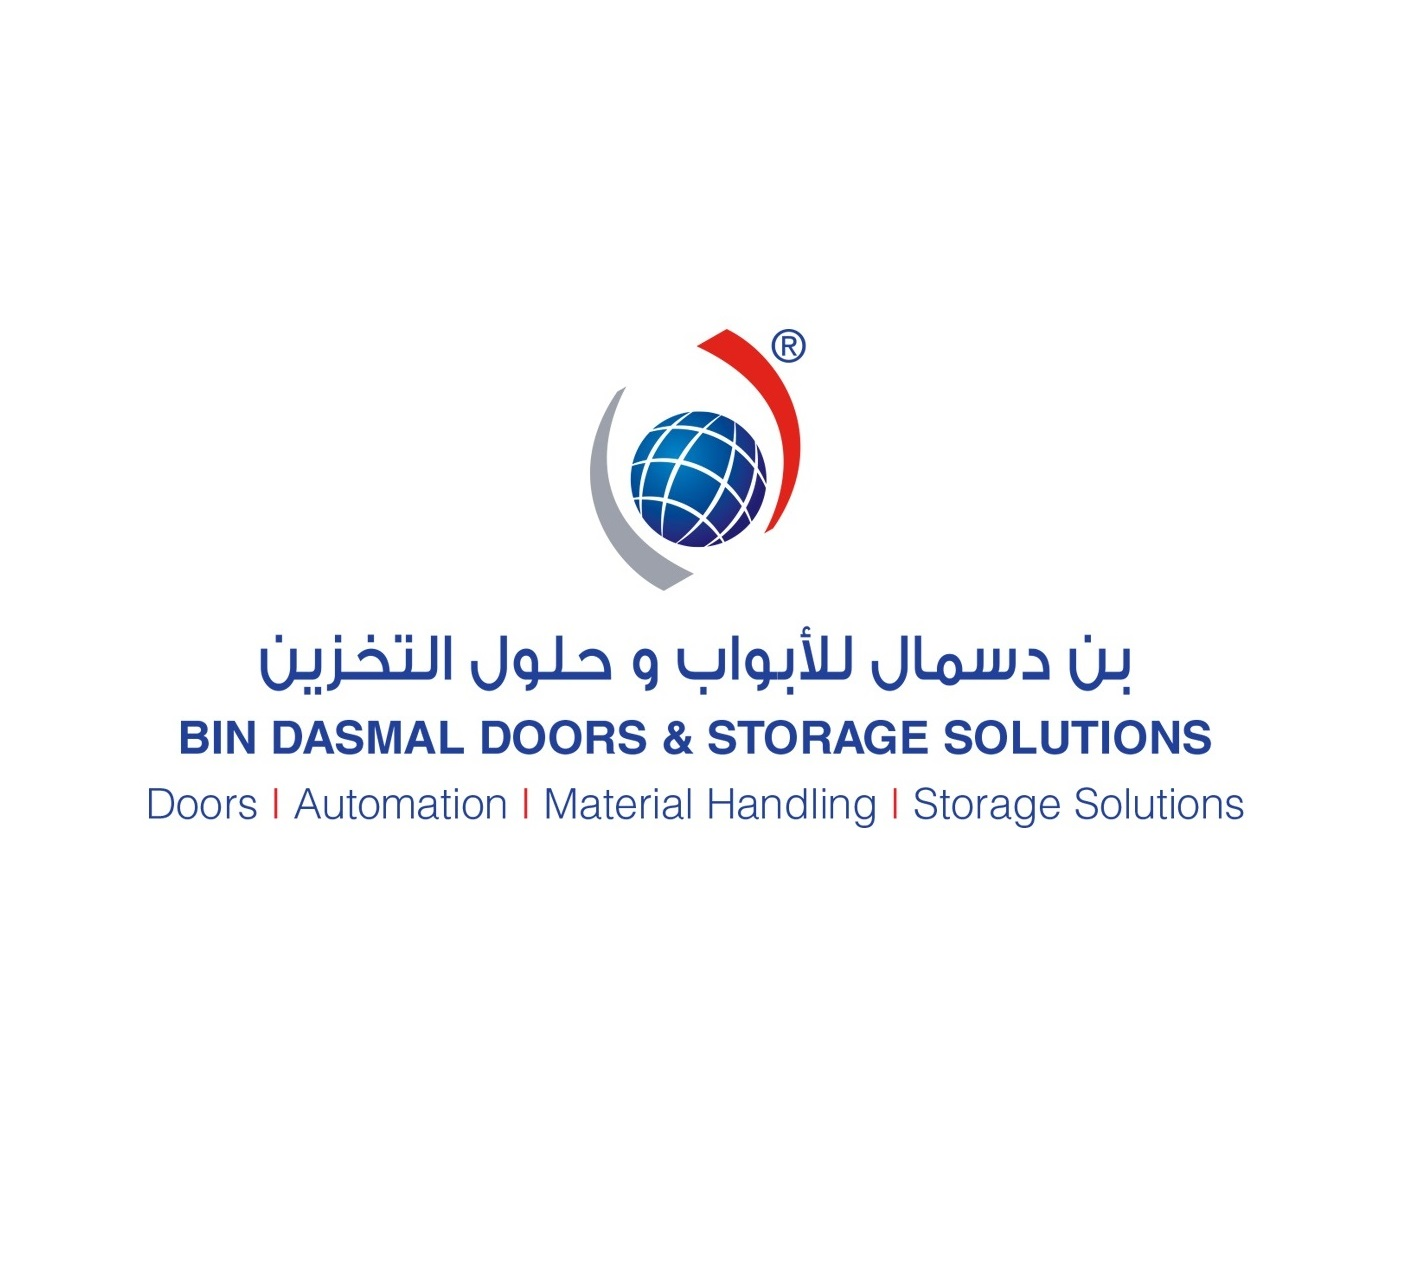 Bin Dasmal Doors & Storage Solutions